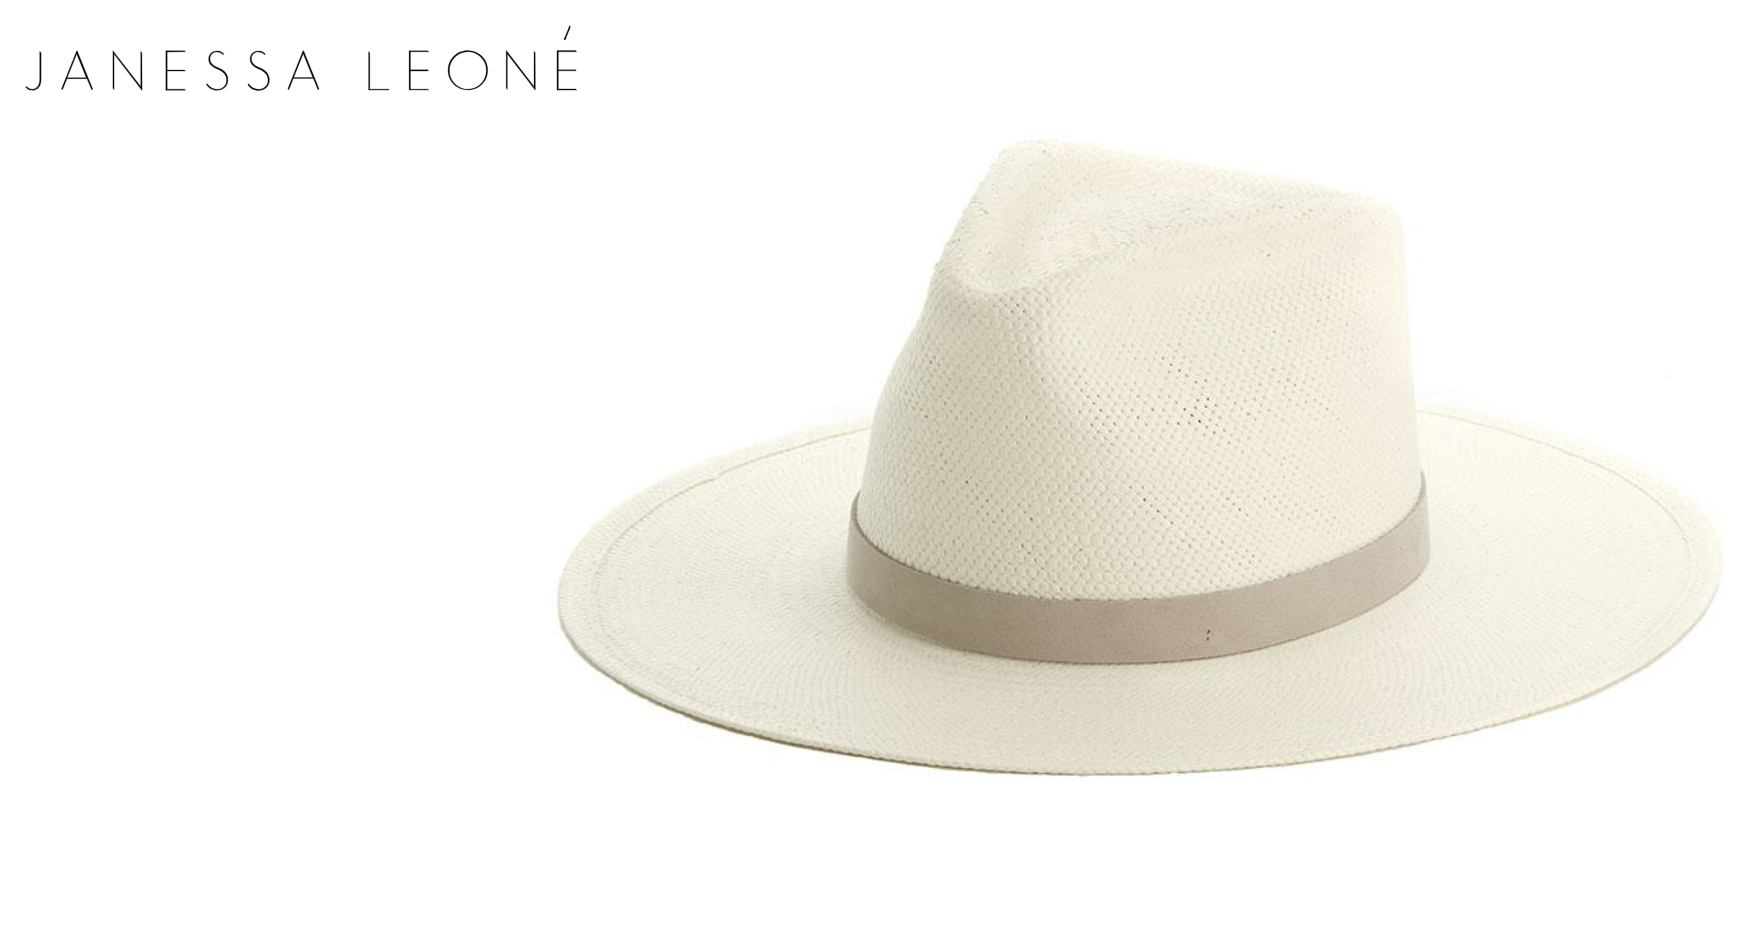 Janessa Leone' Packable Straw Hat